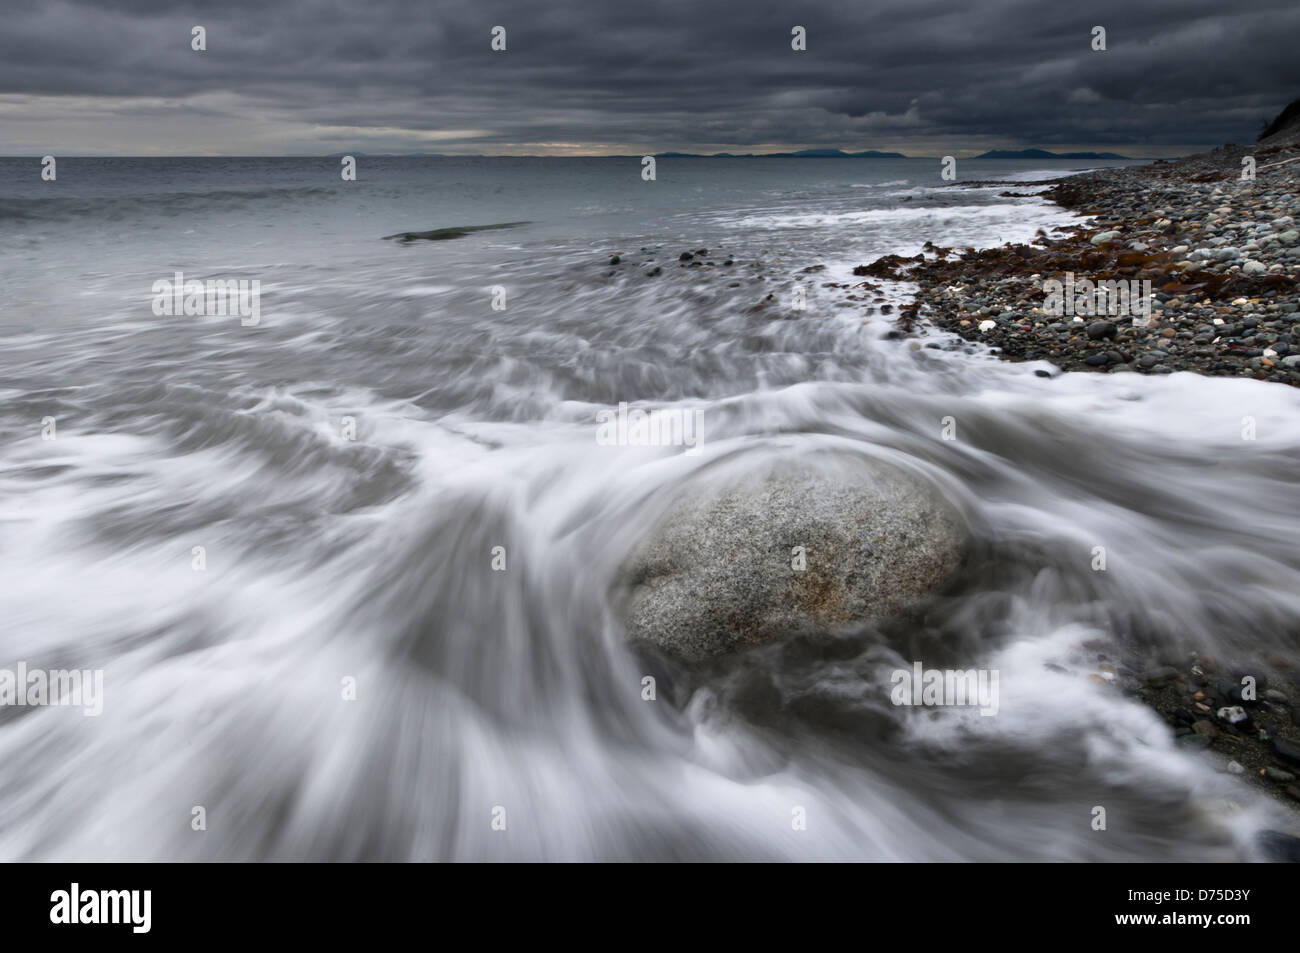 Waves wash up on the beach at Fort Ebey State Park, Whidbey Island, Washington, USA - Stock Image